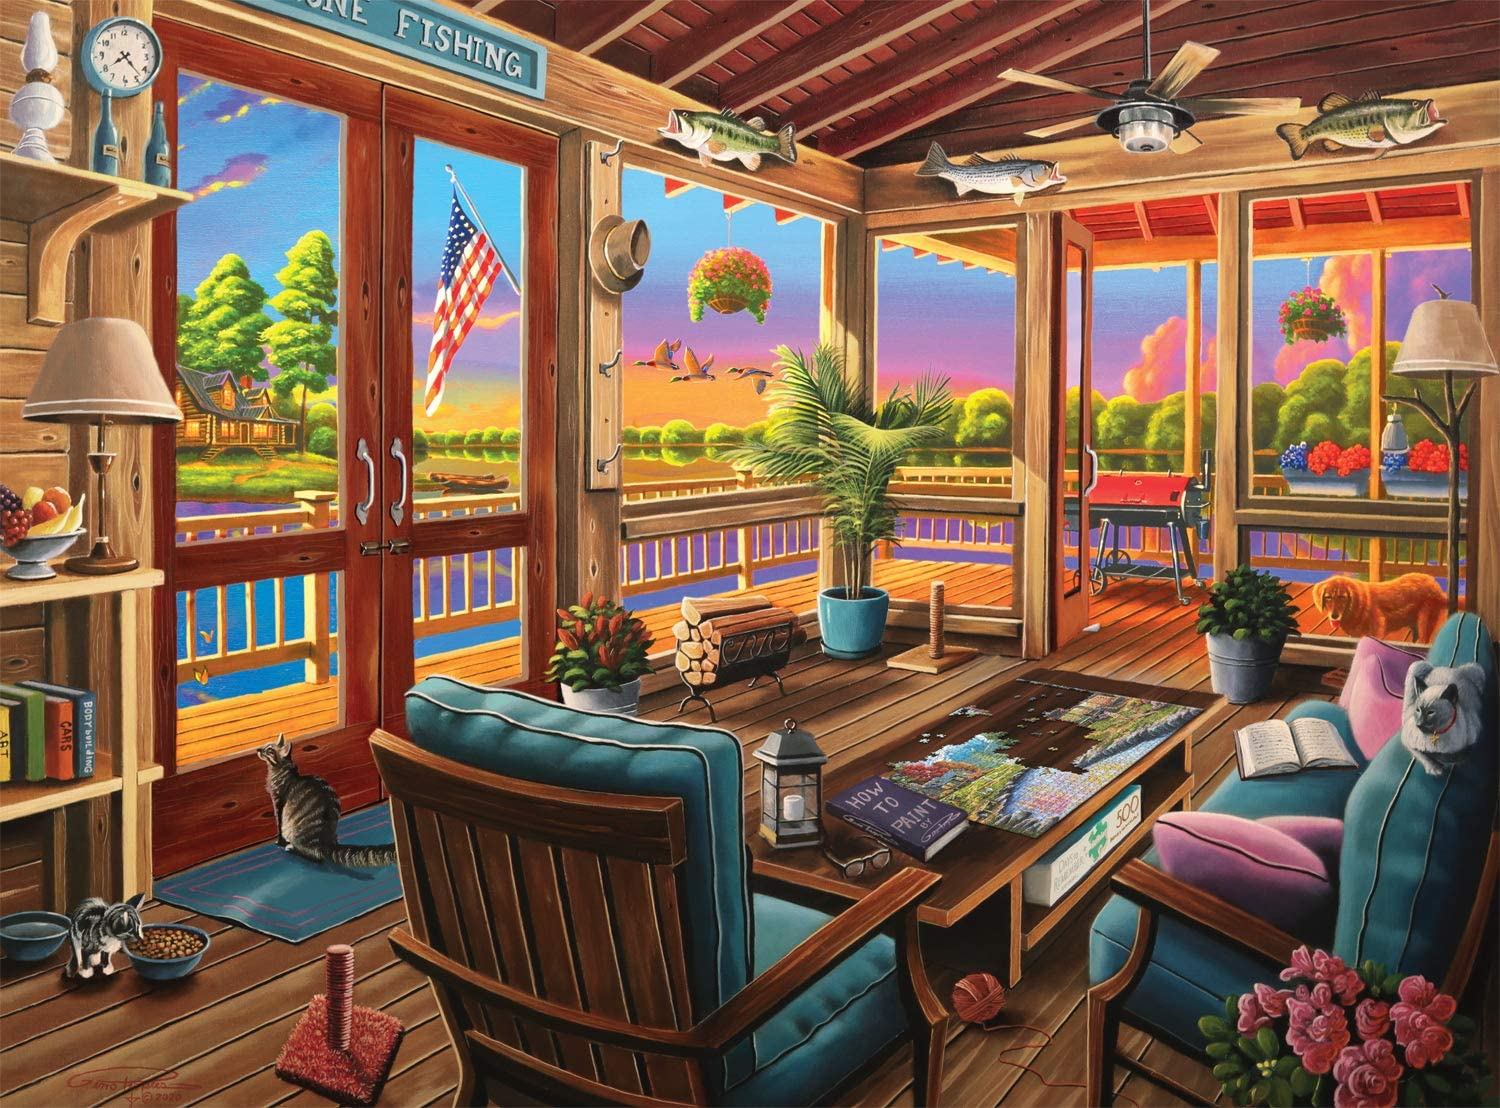 Buffalo Games - Geno Peoples - Lakeside View - 1000 Piece Jigsaw Puzzle